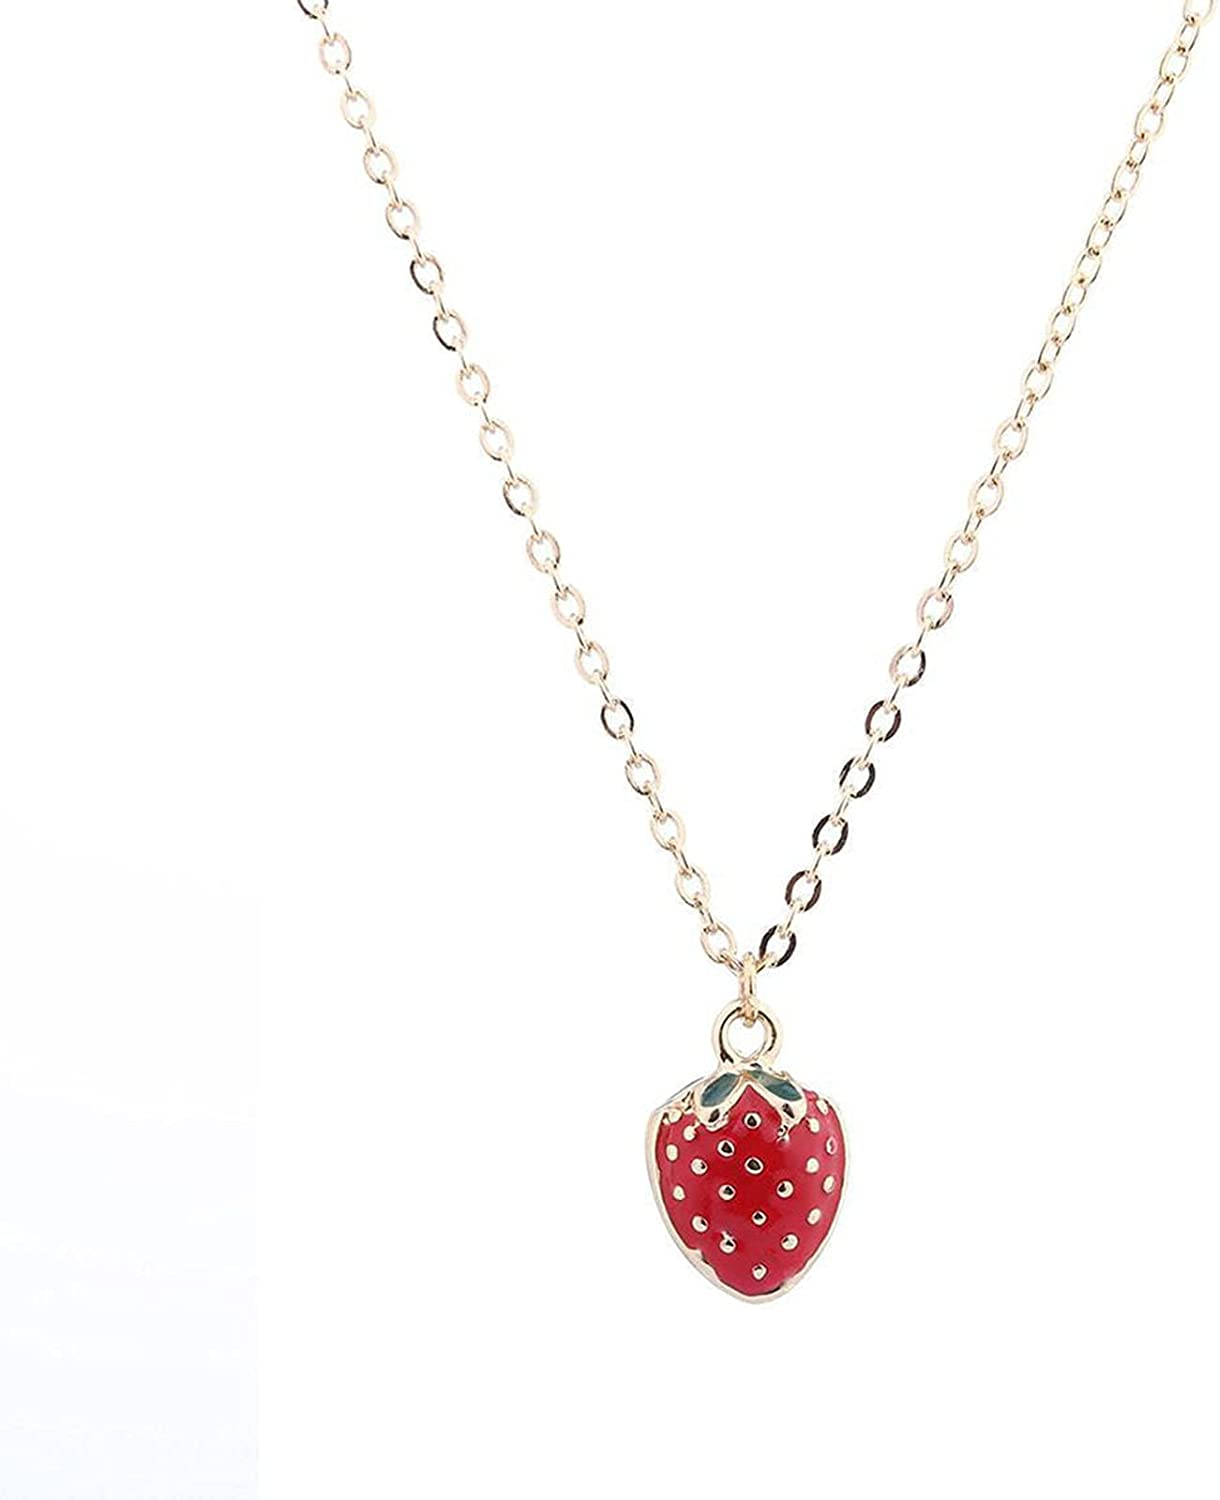 FUTIMELY 4 Pcs Strawberry Jewelry Set for Women Teen Girls Red Strawberry Necklace, Strawberry Earrings, Strawberry Ring, Strawberry Bracelet Cute Food Fruit Charm Jewelry Gift